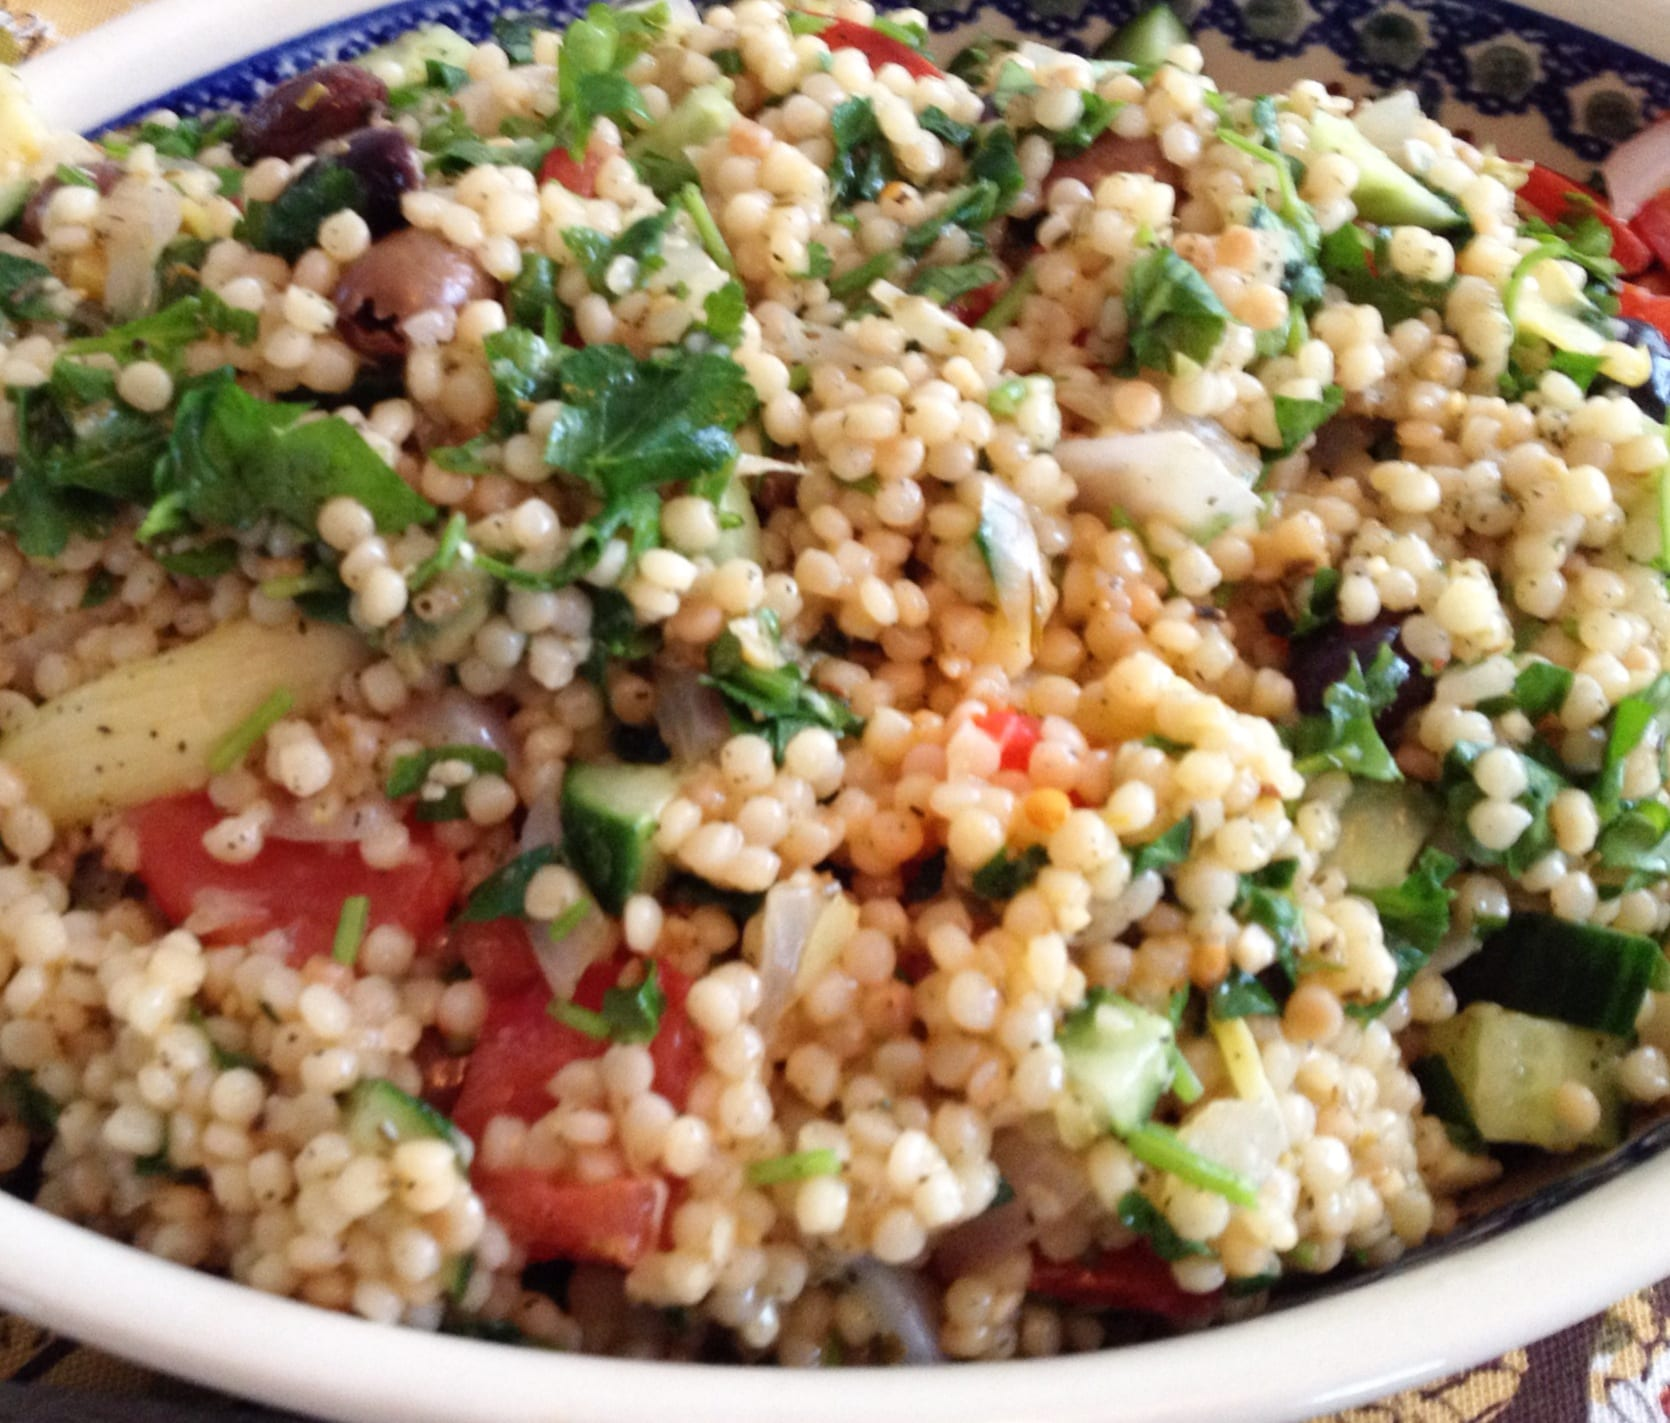 Minted Israeli Couscous